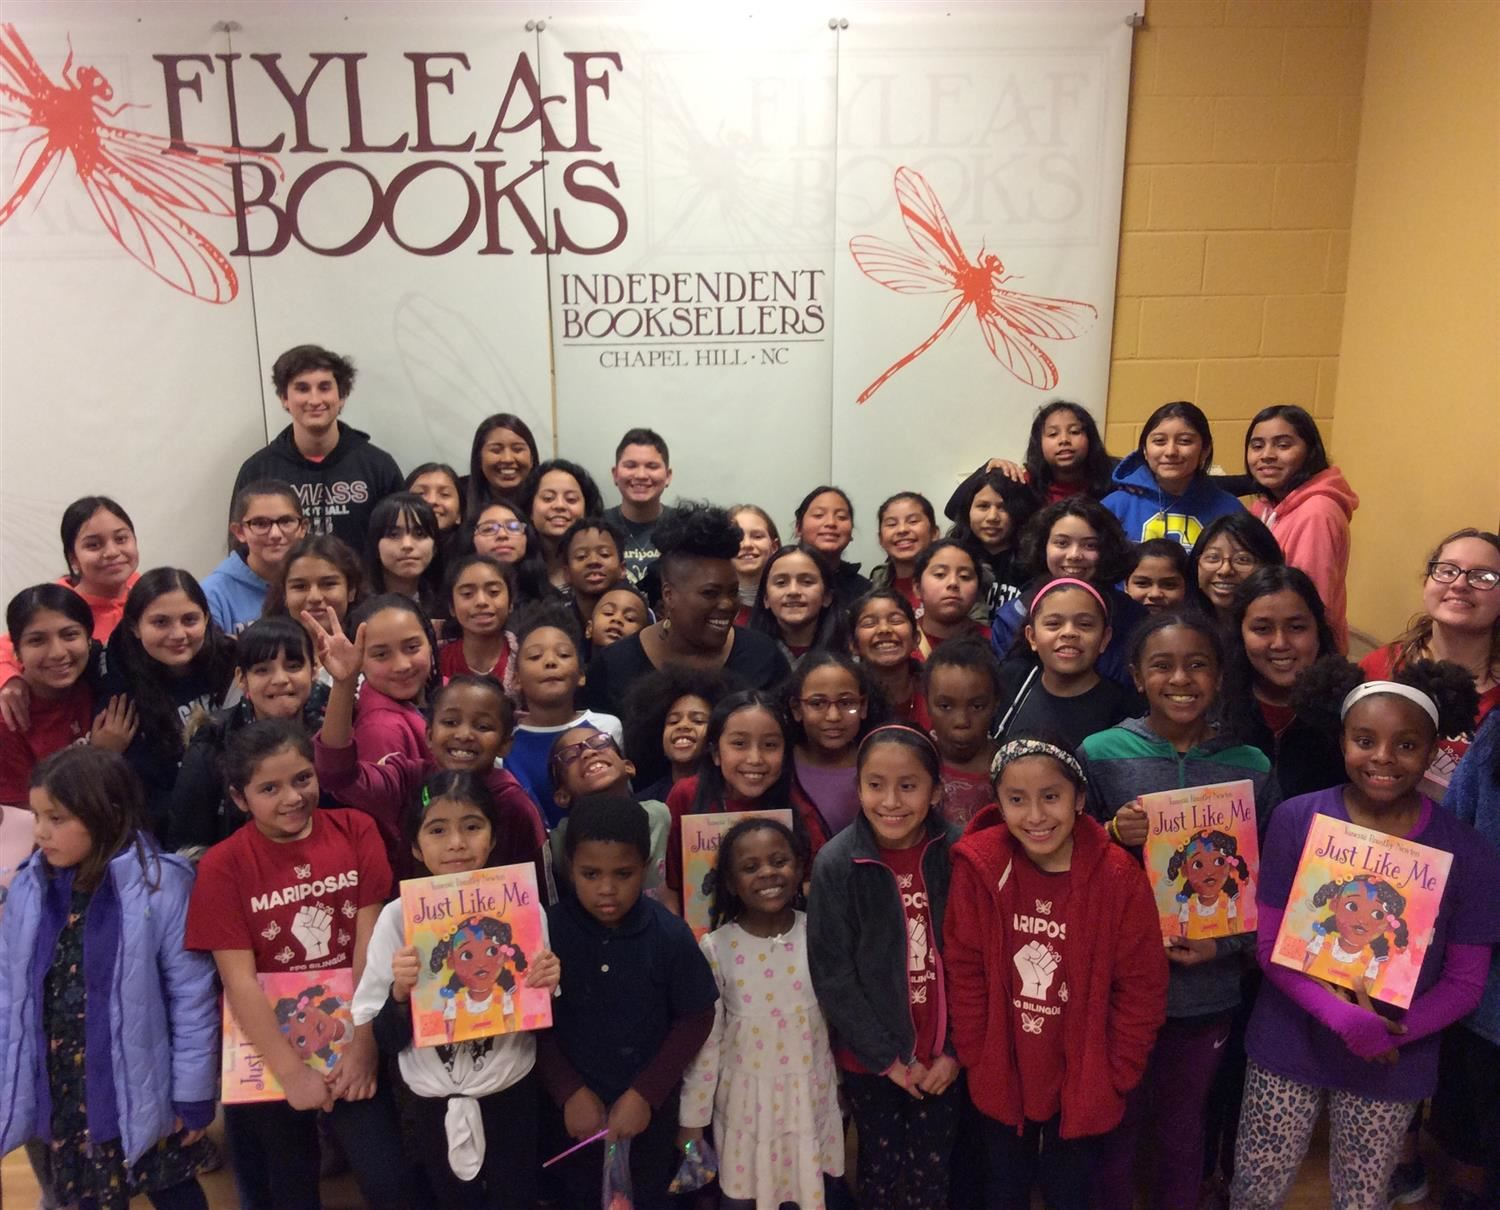 FPG students at Flyleaf